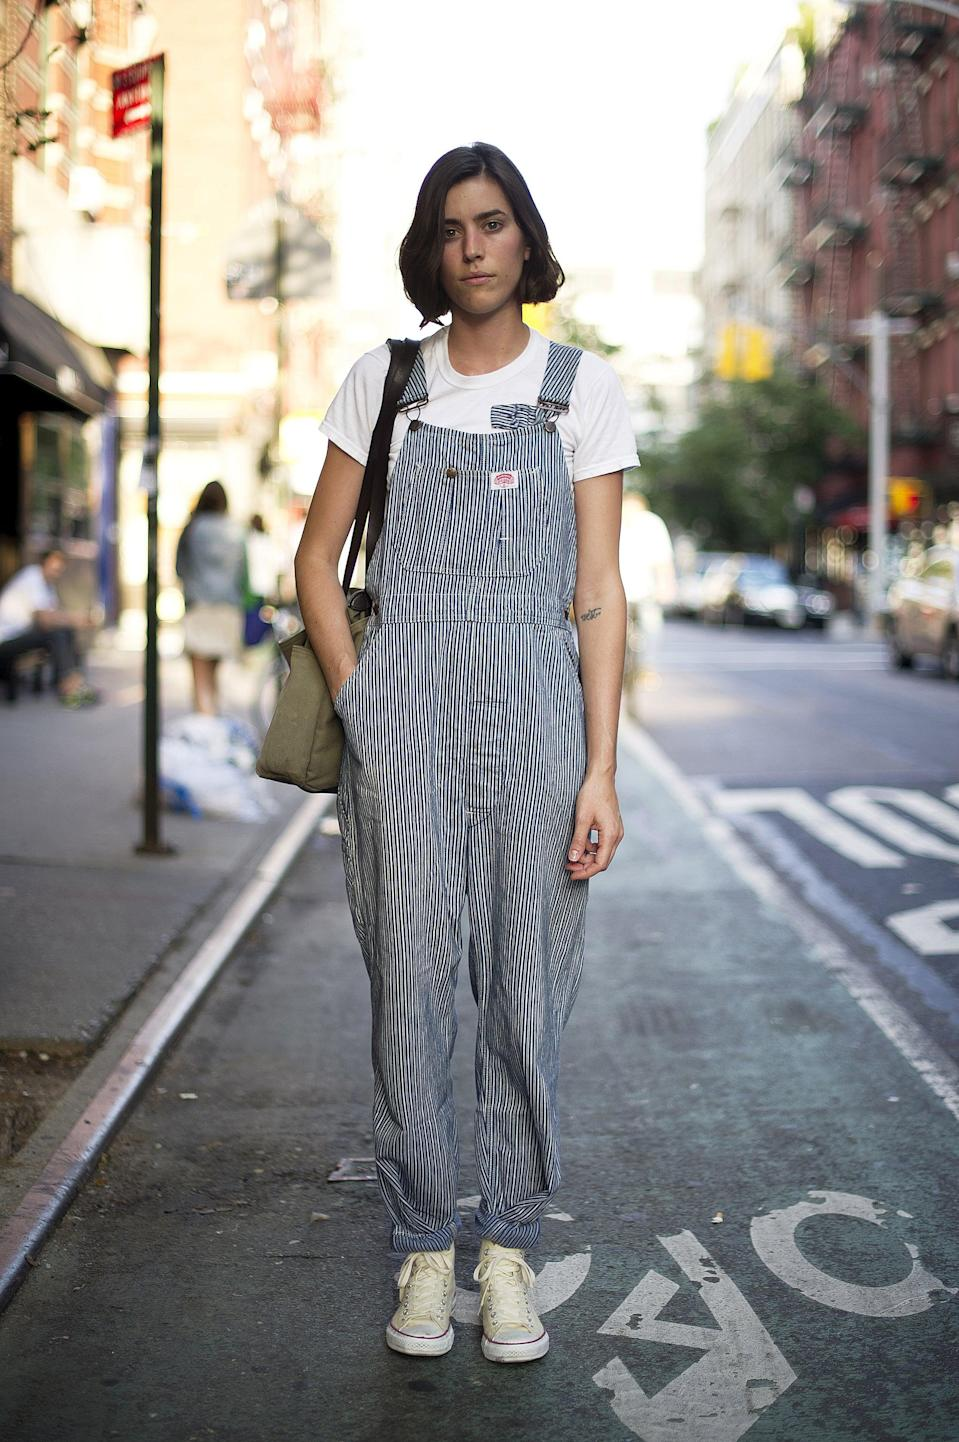 <p>We're loving the look of these overalls and easy kicks - a little more playful than your average denim.</p>